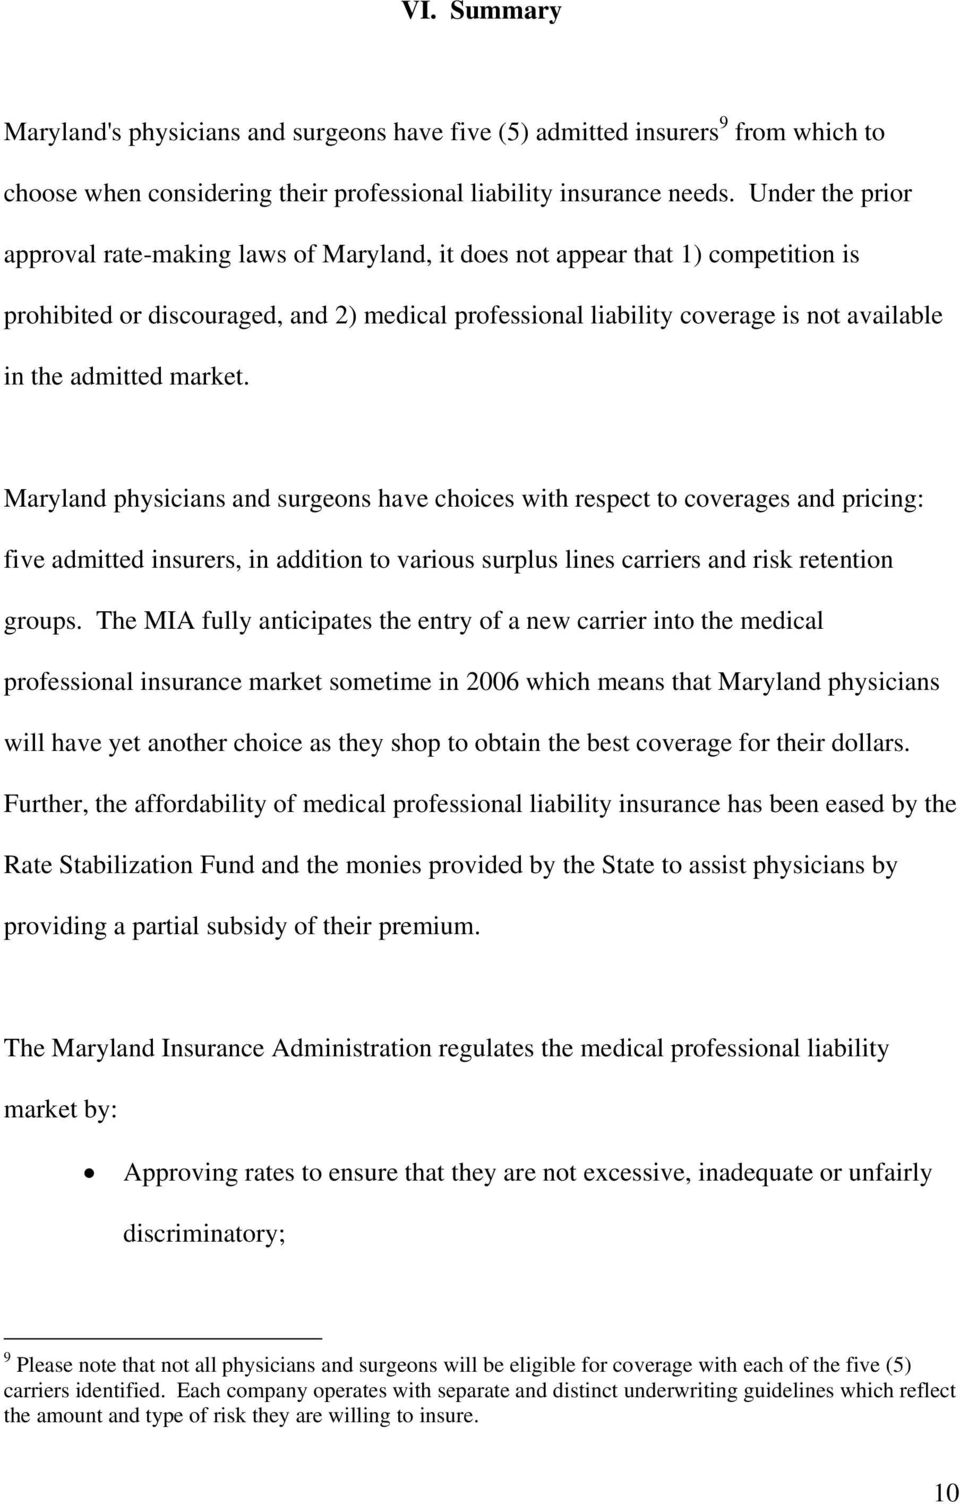 admitted market. Maryland physicians and surgeons have choices with respect to coverages and pricing: five admitted insurers, in addition to various surplus lines carriers and risk retention groups.